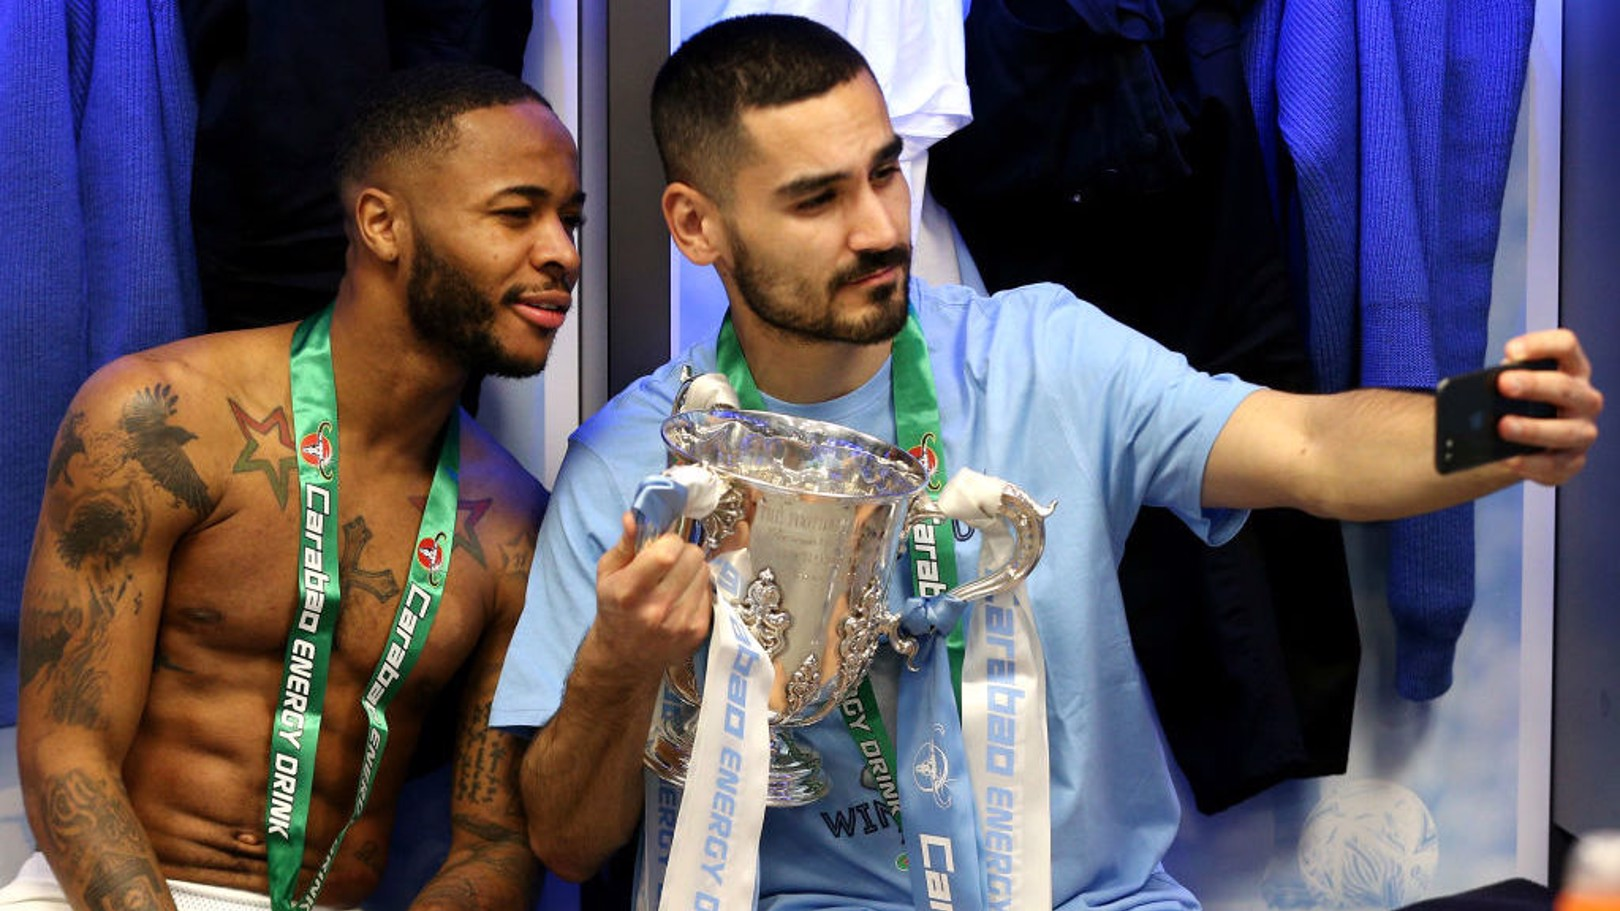 CUP SUCCESS: City's record in the Carabao Cup over the past three years is remarkable